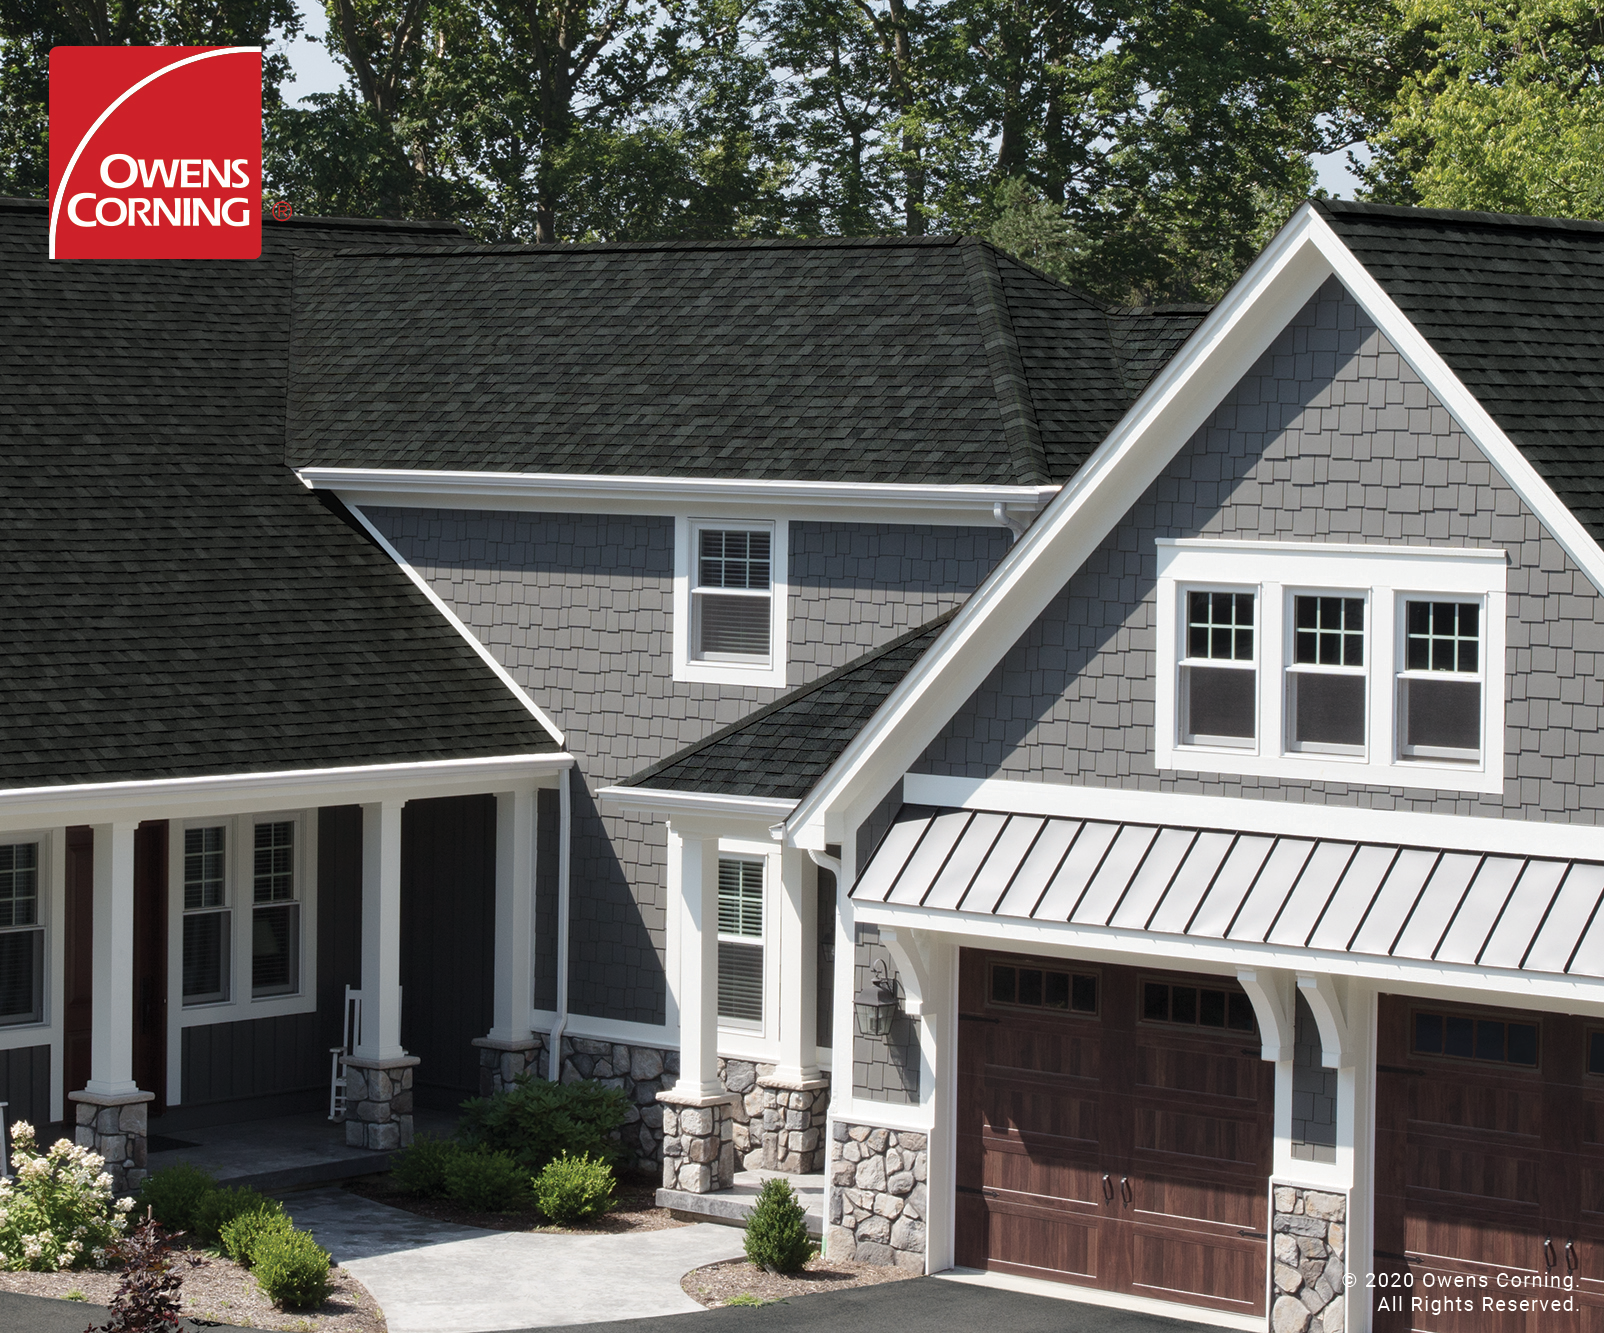 Top 4 Reasons to Choose TruDefinition® Duration FLEX® Shingles for Your Home